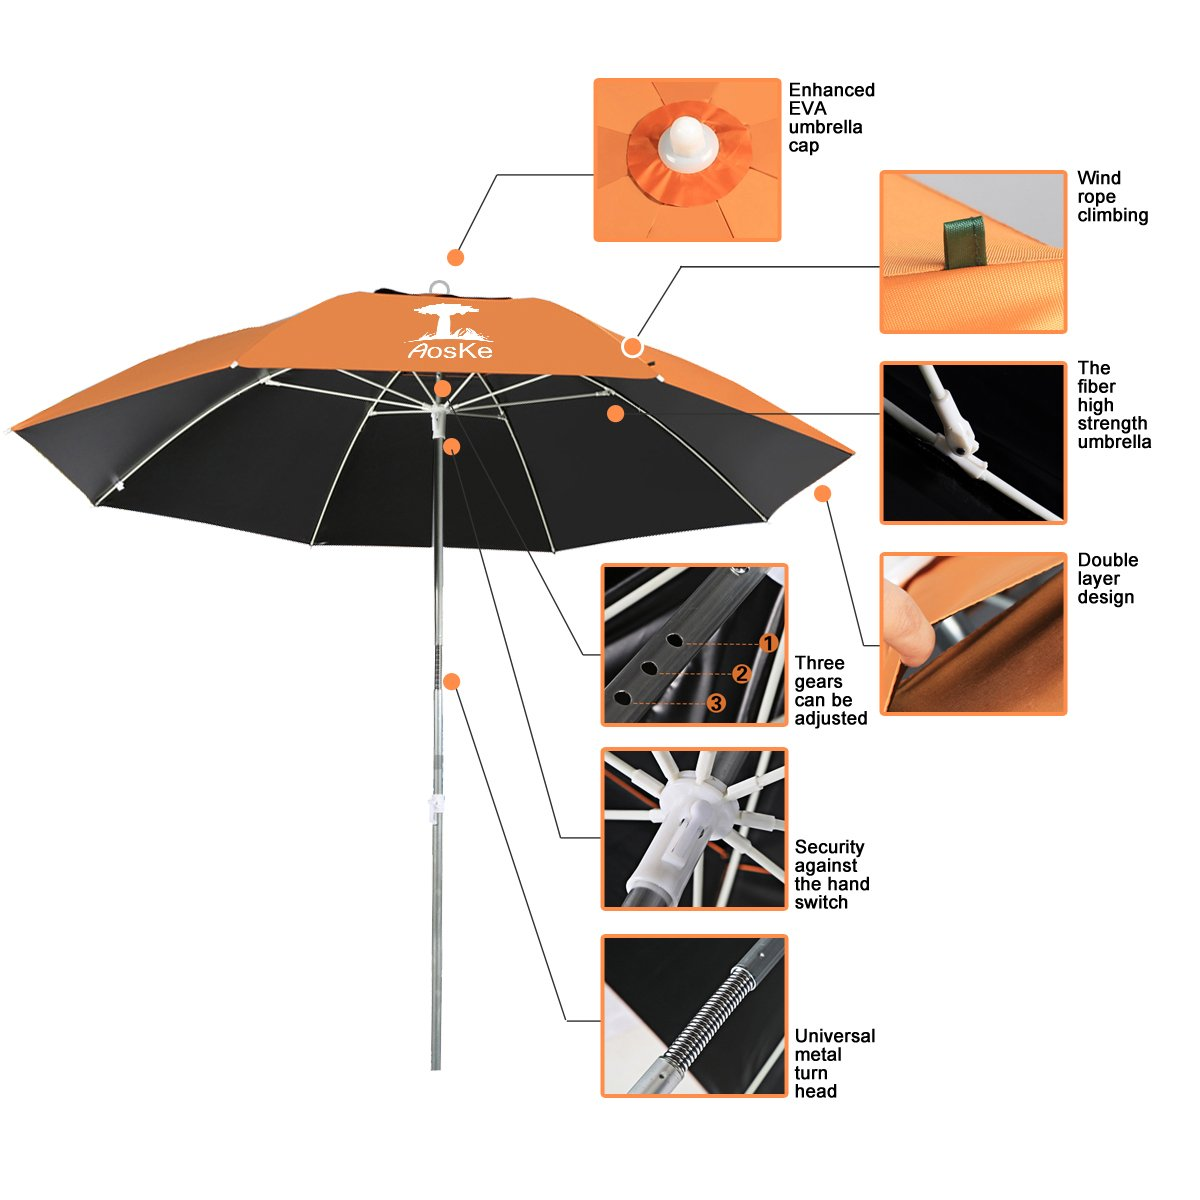 AosKe Portable Sun Shade Umbrella, Inclined, Heat Insulation, Antiultraviolet Function, Commonly Used In patio, Beach, Fishing Essential – Orange